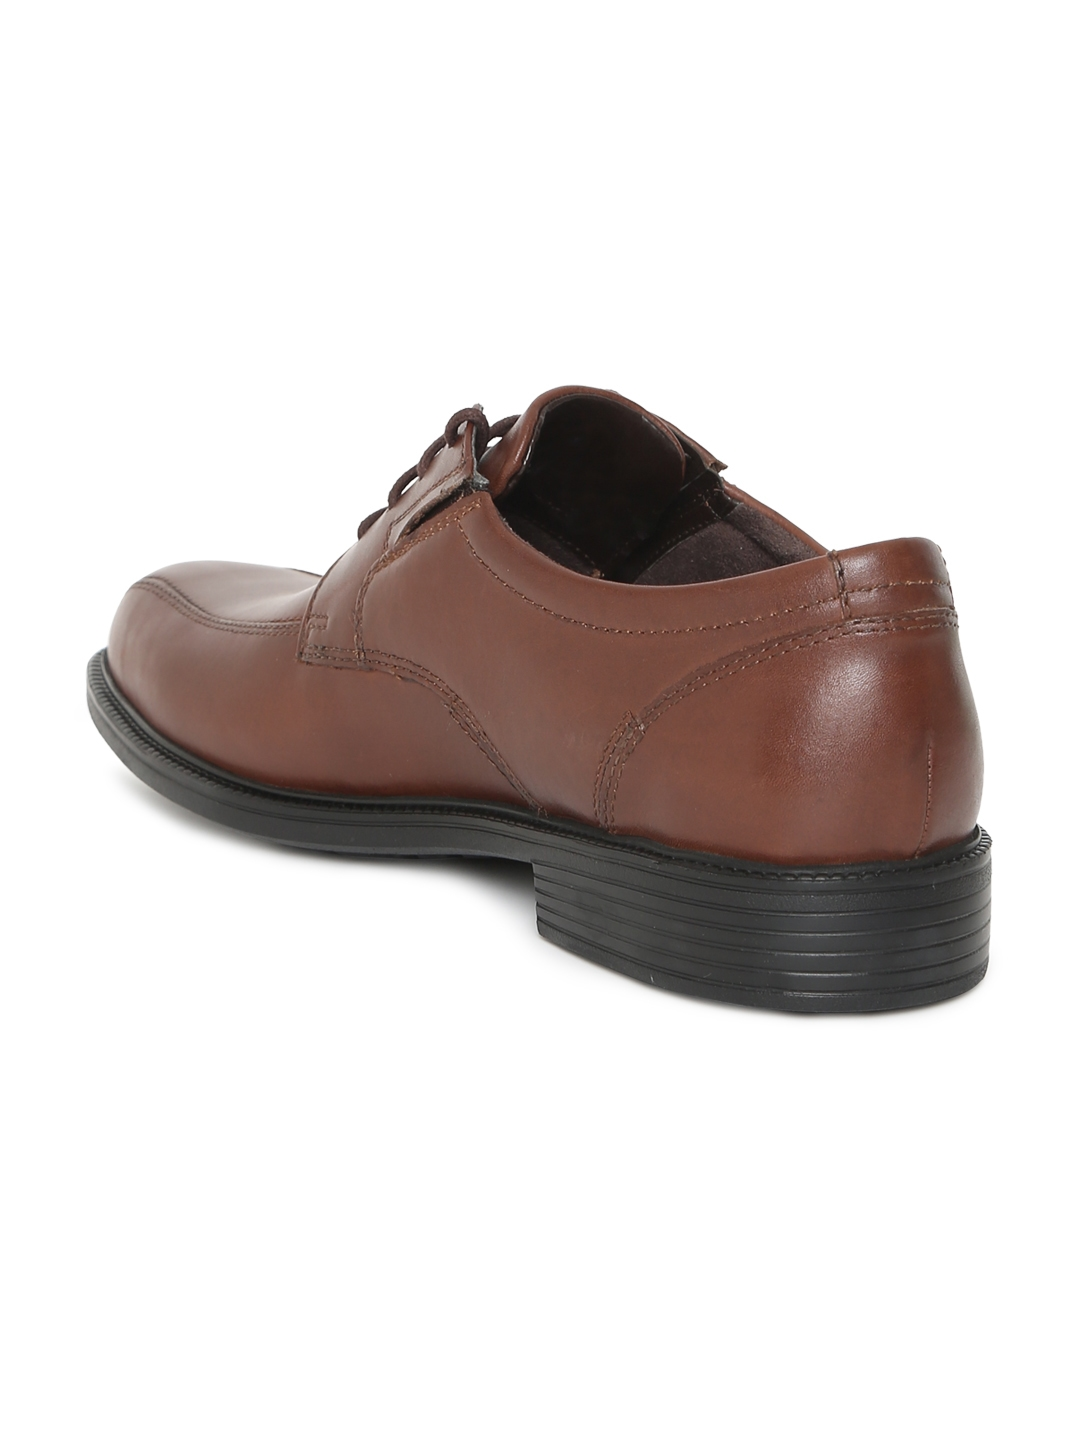 Buy Clarks Men Brown Leather Formal Bardwell Walk Derby Shoes ... 247172ca85d5